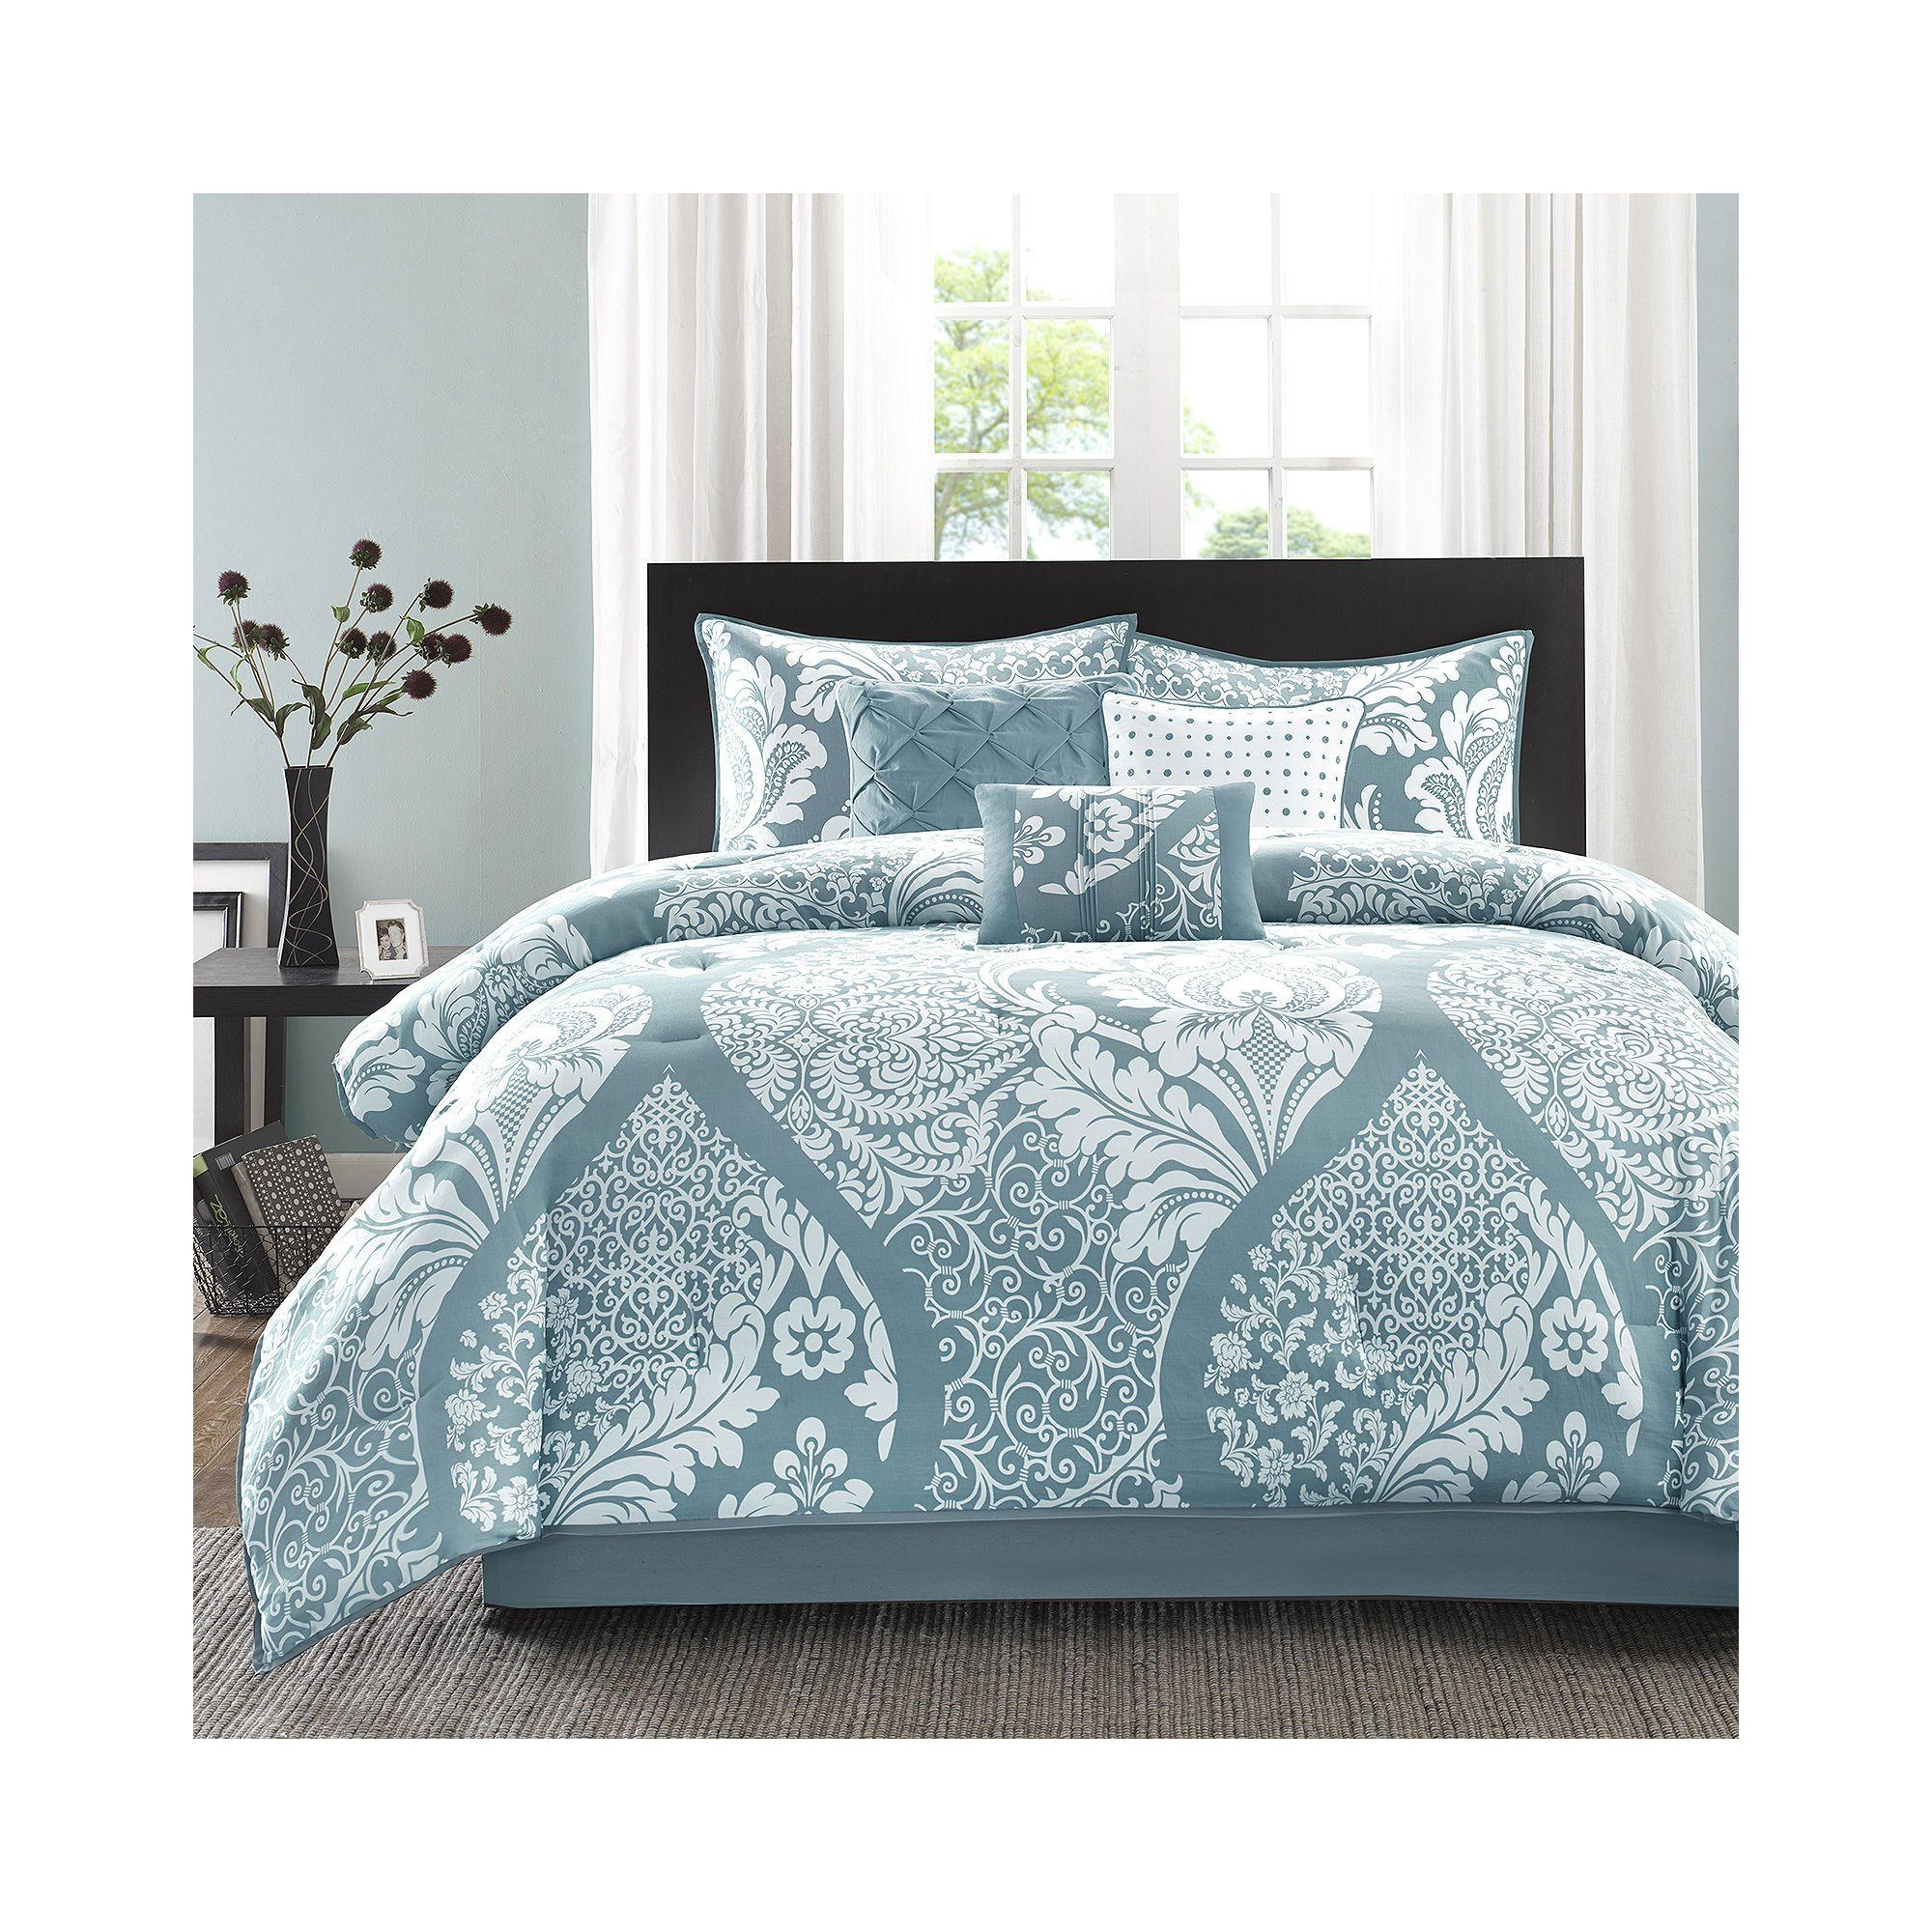 Madison Park Vienna 200TC 7 Piece Cotton Printed Comforter